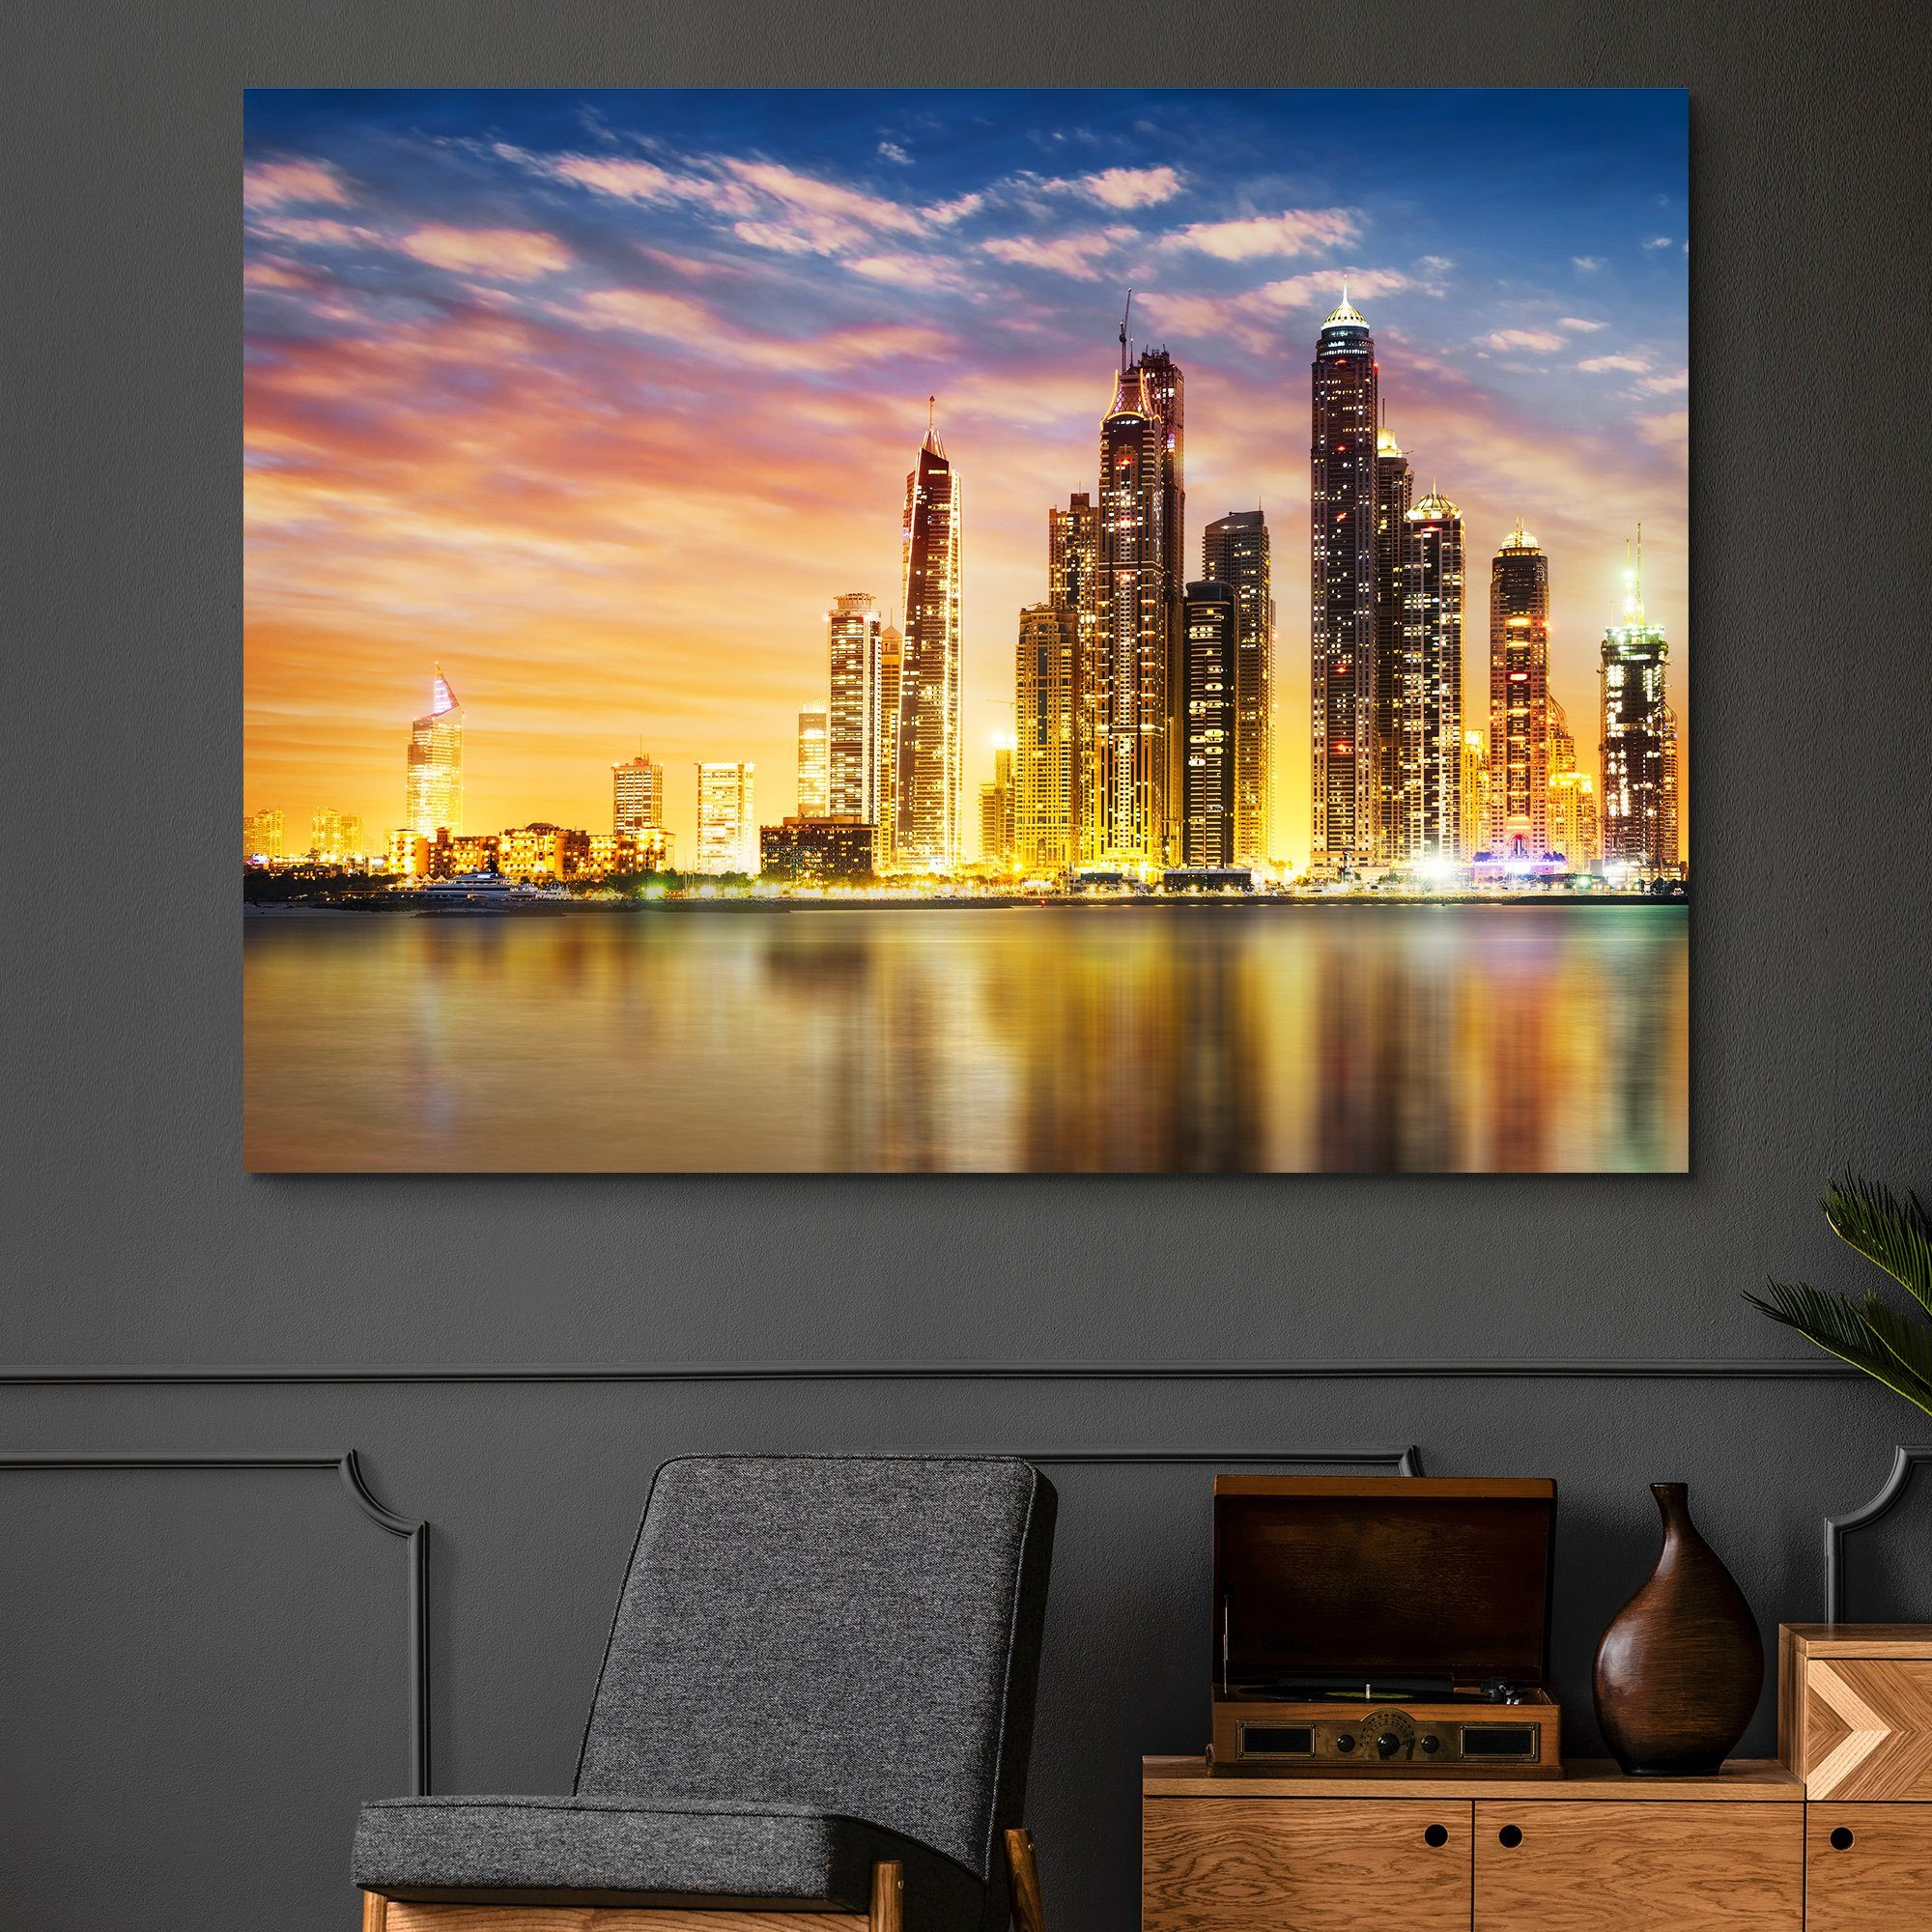 Dubai Marina Skyline wall art